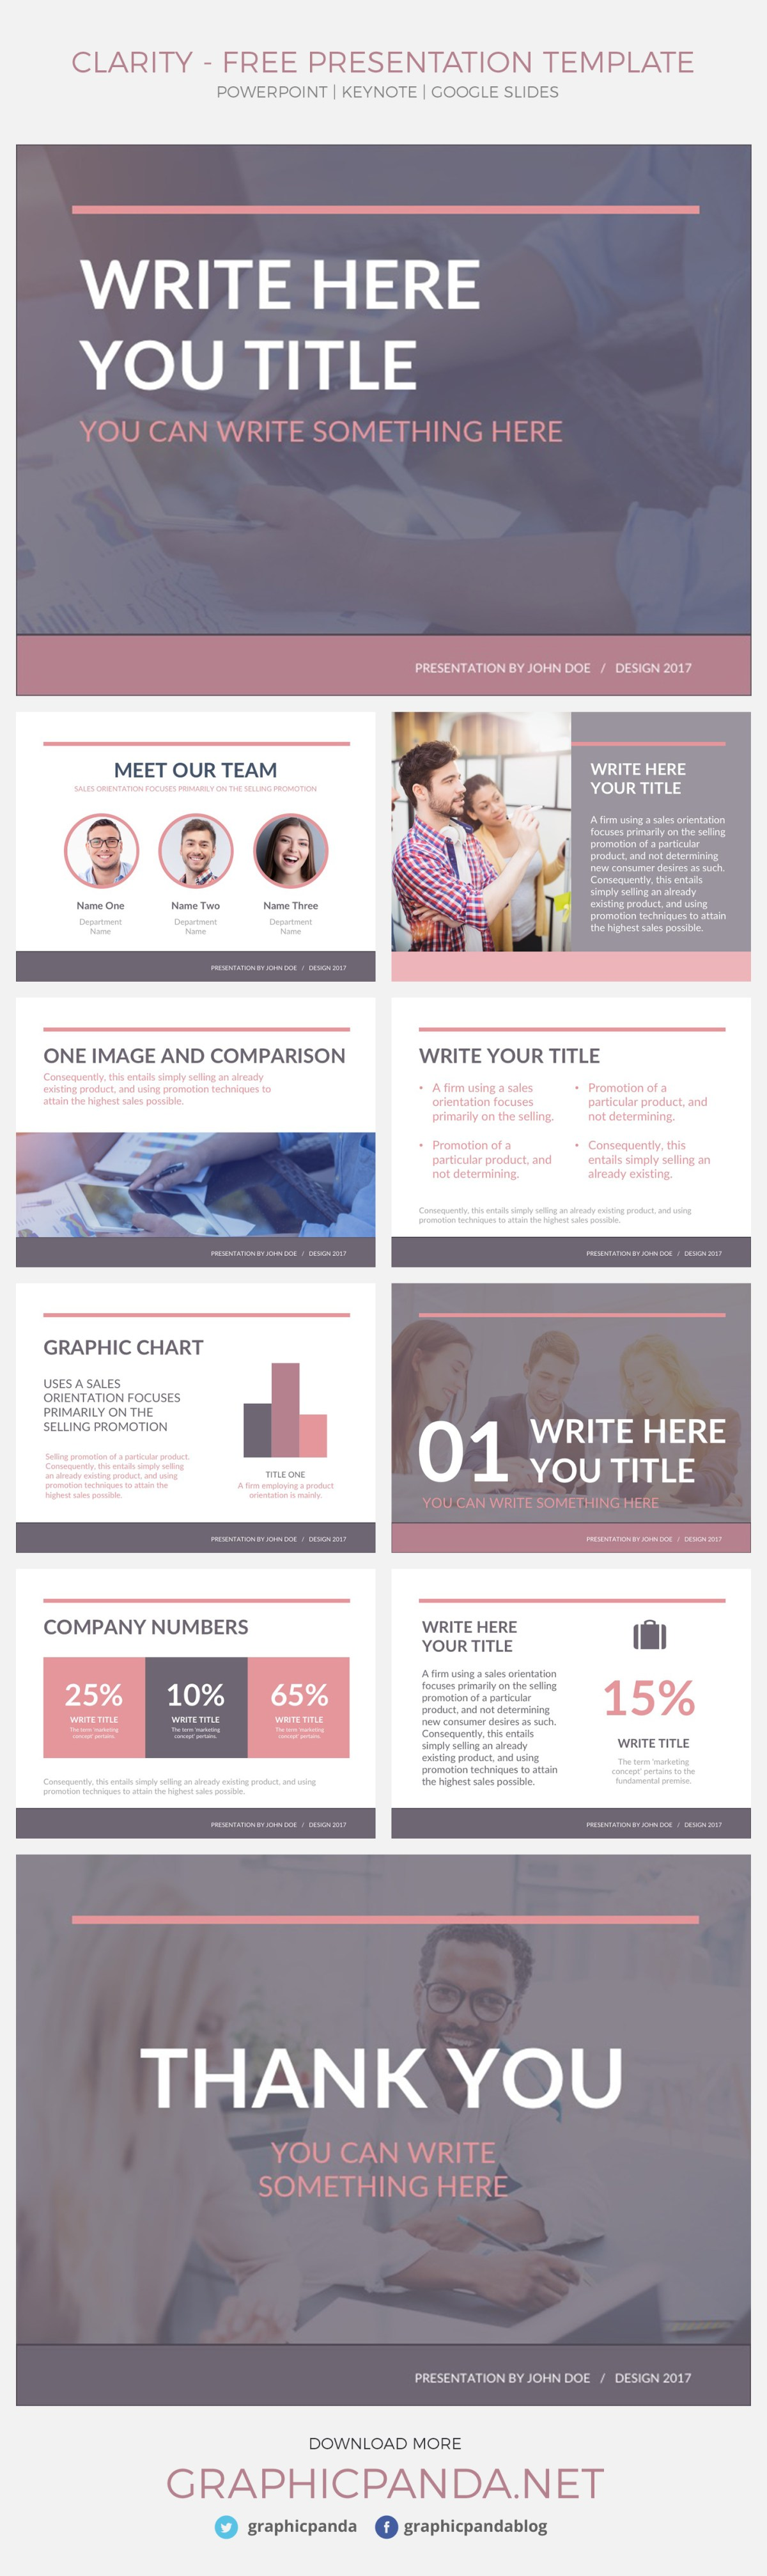 If you are looking for a presentation template that will be stylish but professional at the same time, Clarity Template is the one for you. Ranging from its fresh colors that brighten up the scene to the modern layouts, this presentation template will amuse your audience and maintain their focus on your data. Whether you are a student in school, who needs to present your data but do not want to bore your class. Or a business person who needs to show market sales, products or pitch deck investments, this is the template for you.